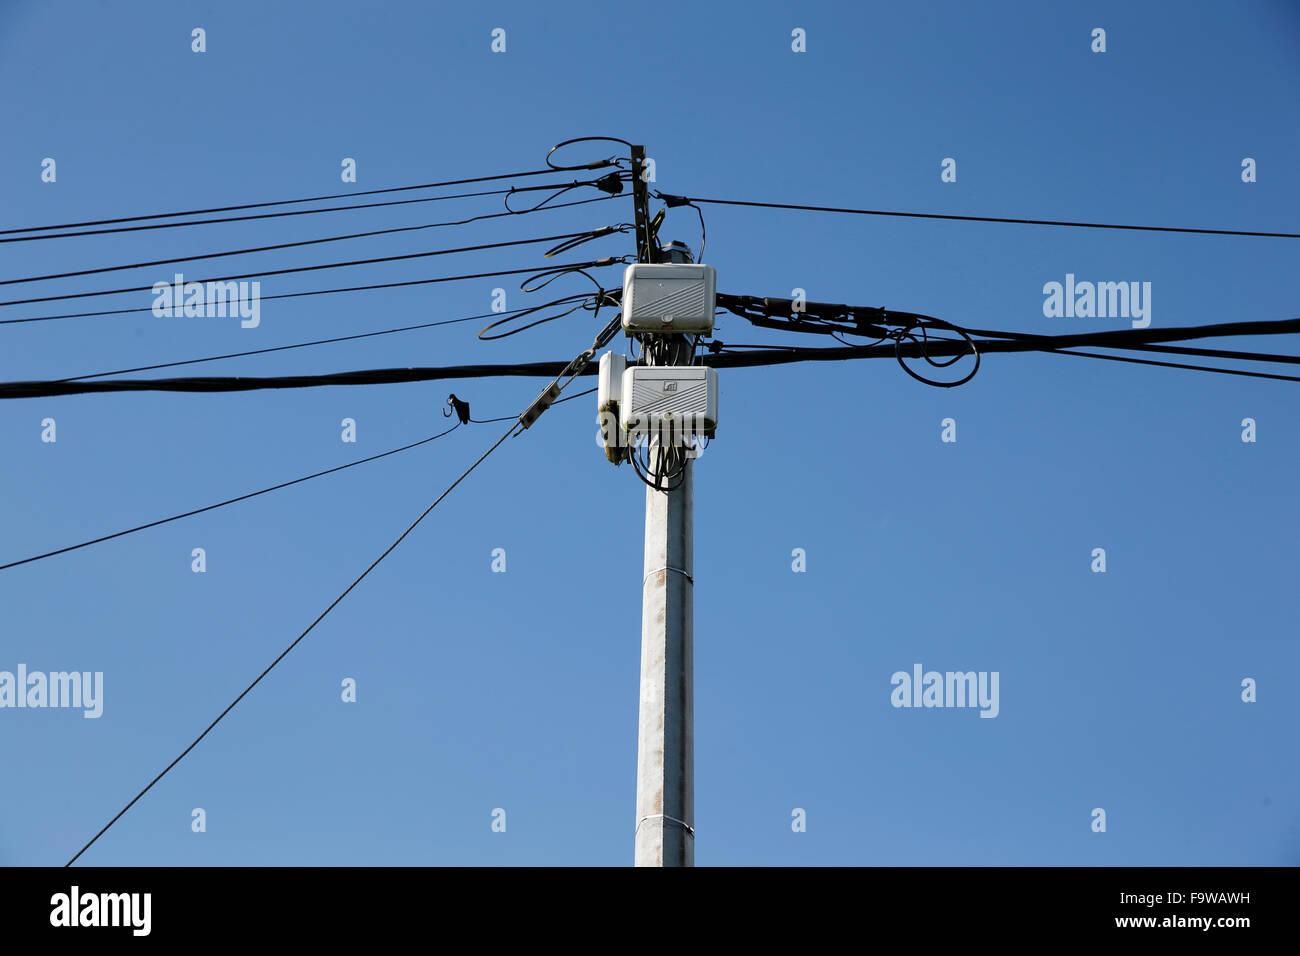 Electrical wiring. - Stock Image